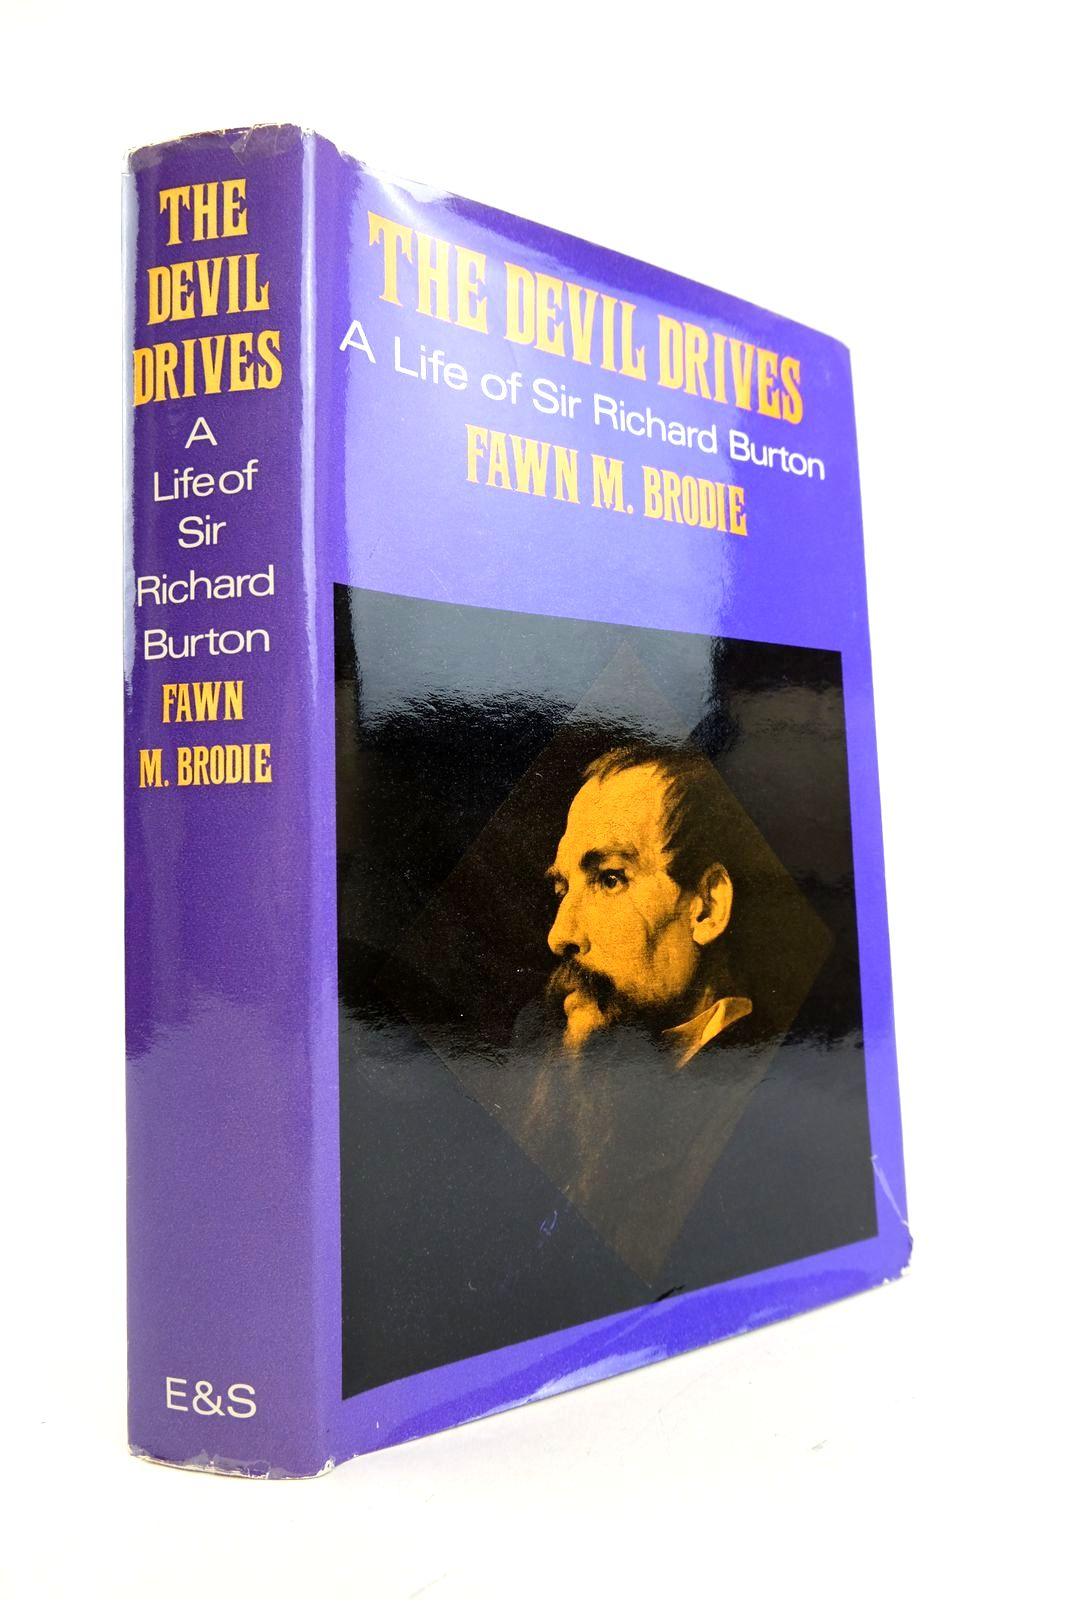 Photo of THE DEVIL DRIVES written by Brodie, Fawn M. published by Eyre & Spottiswoode (STOCK CODE: 2133334)  for sale by Stella & Rose's Books